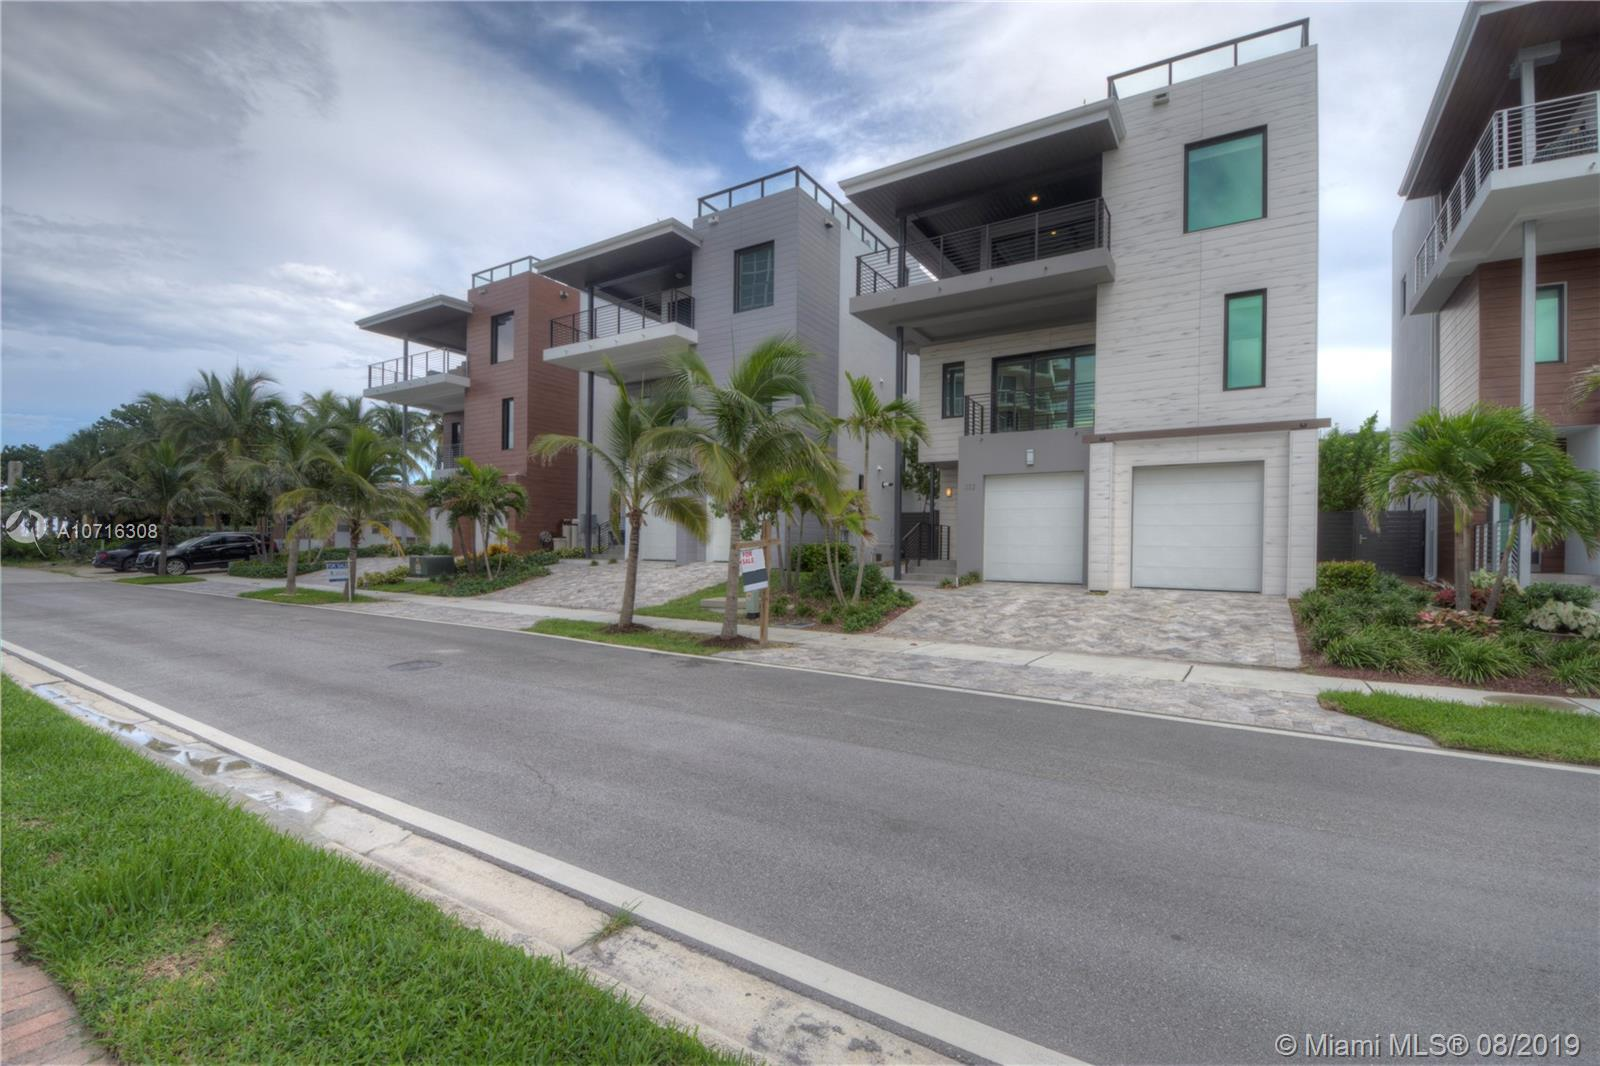 332  Balboa St  For Sale A10716308, FL